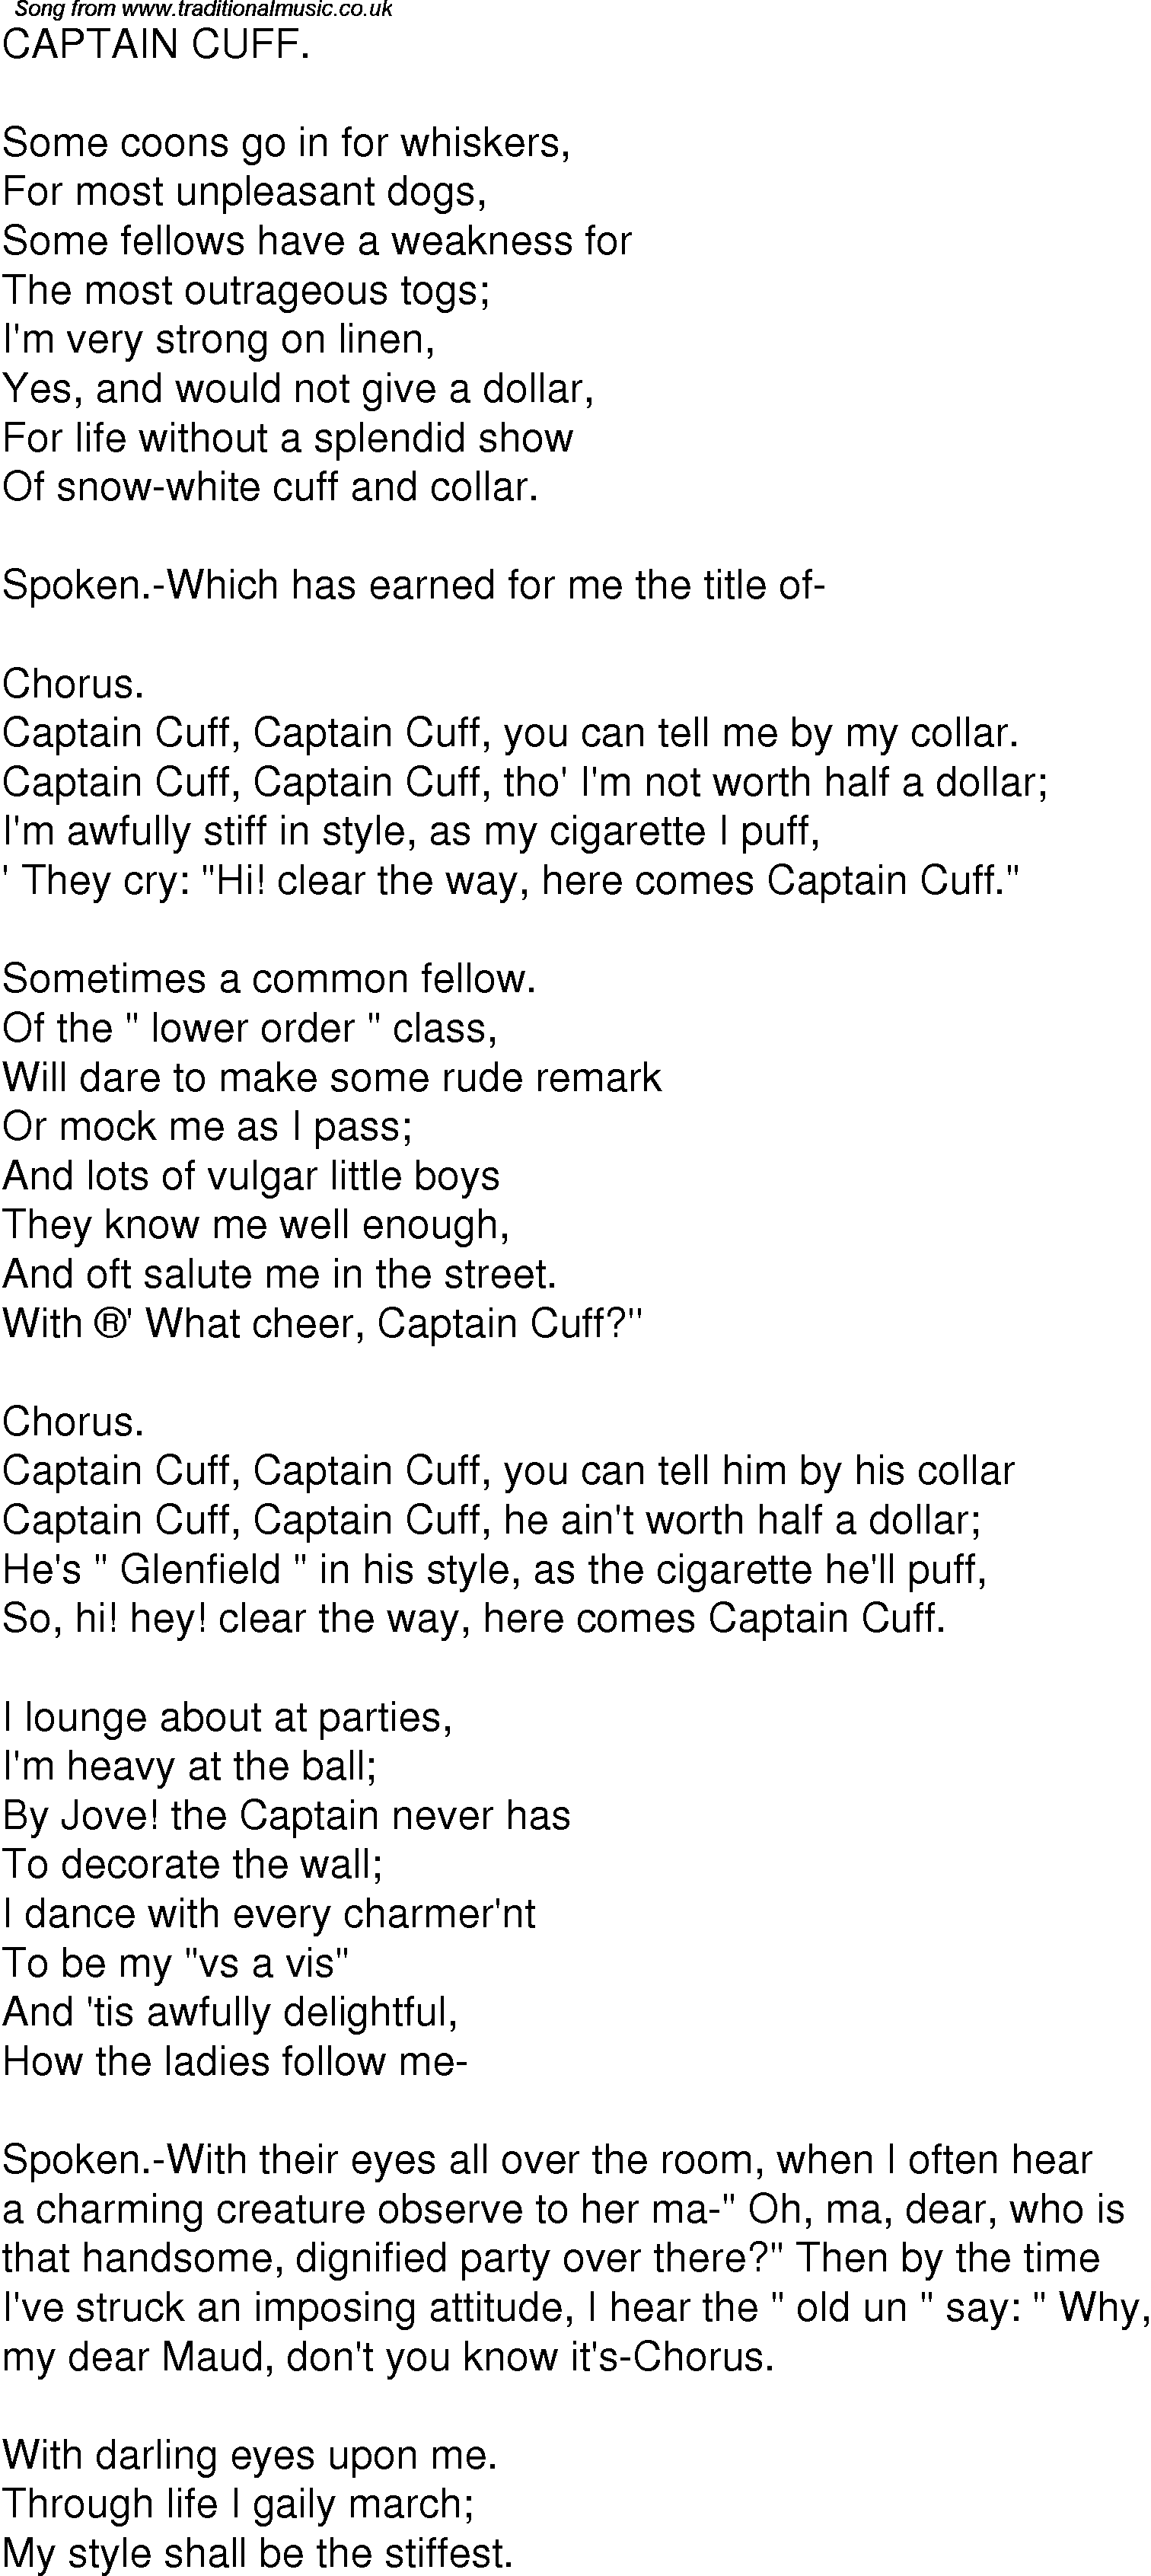 Captain oh lyrics